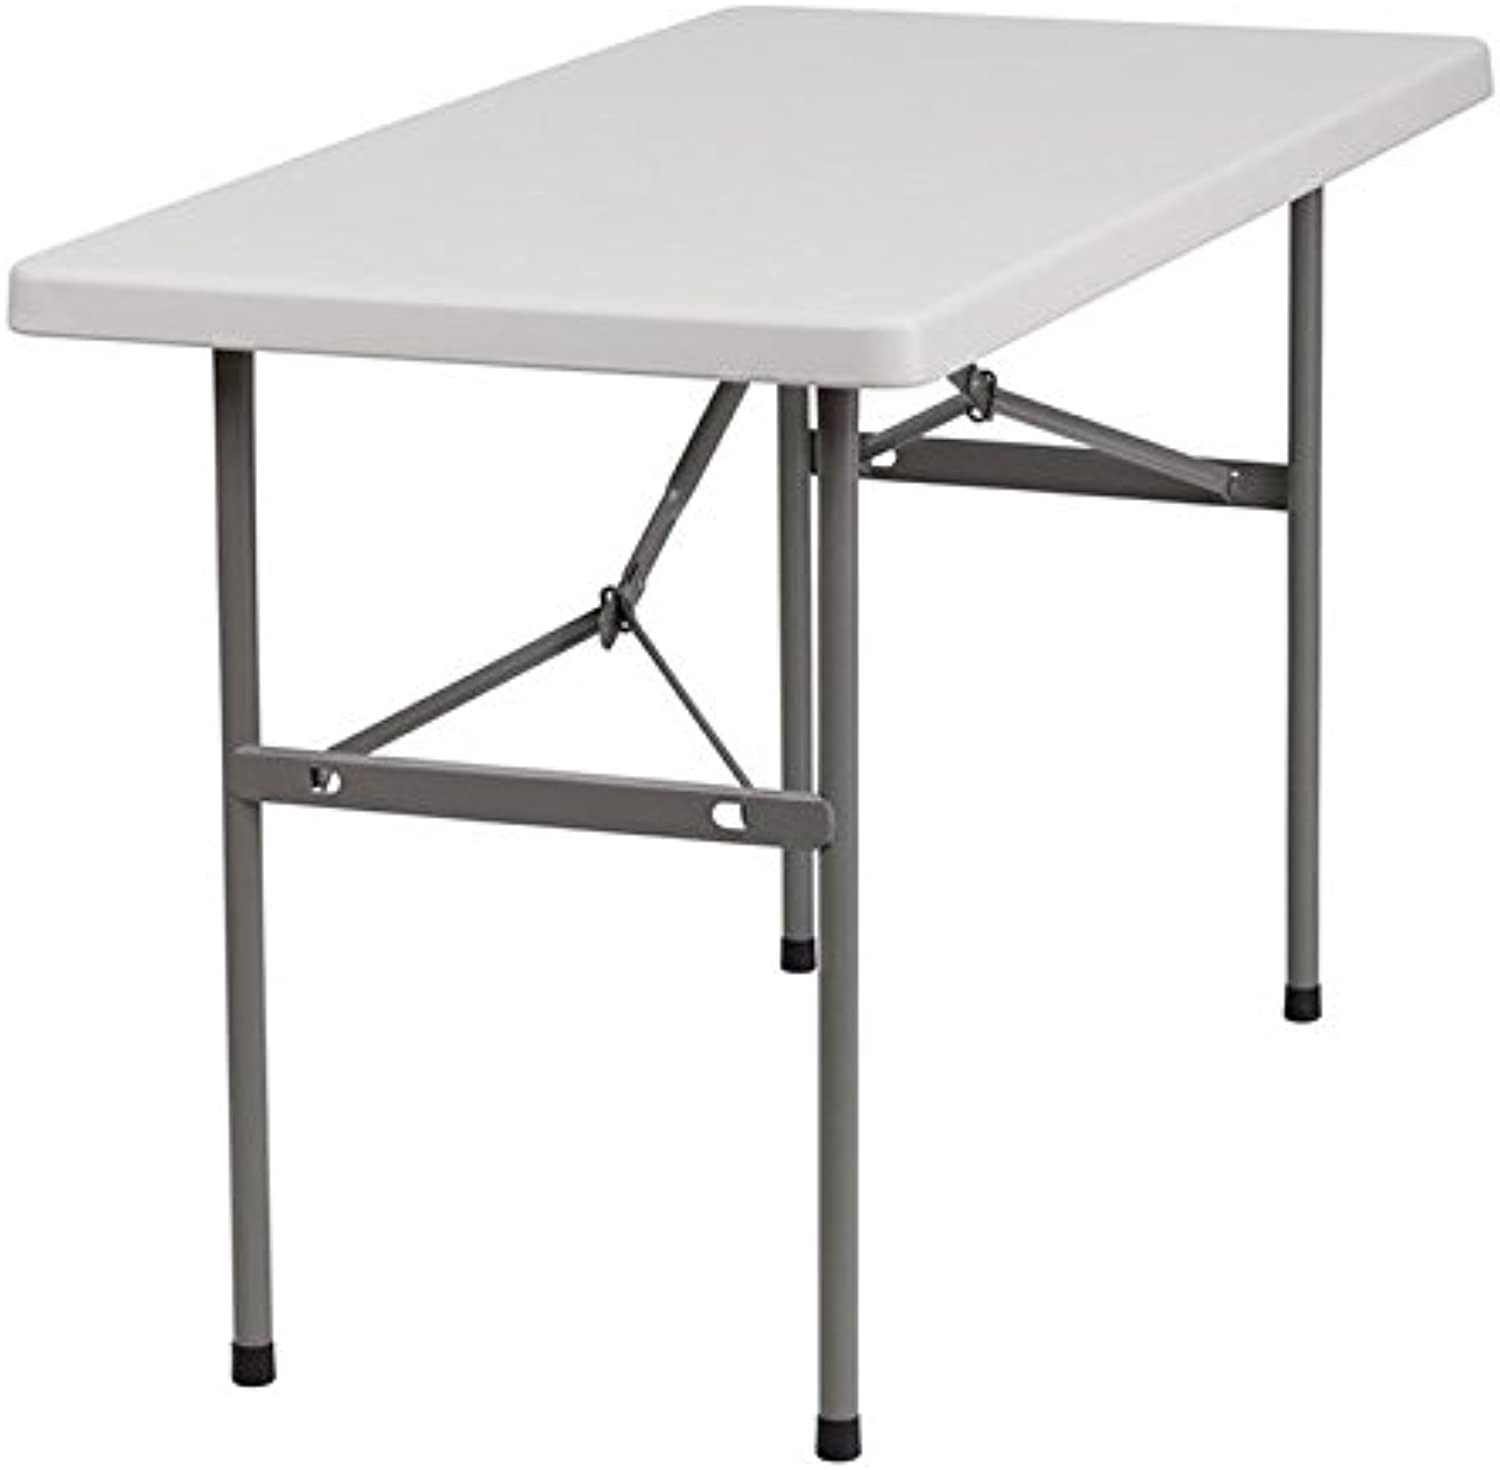 Bowery Hill Granite Plastic Folding Table in White